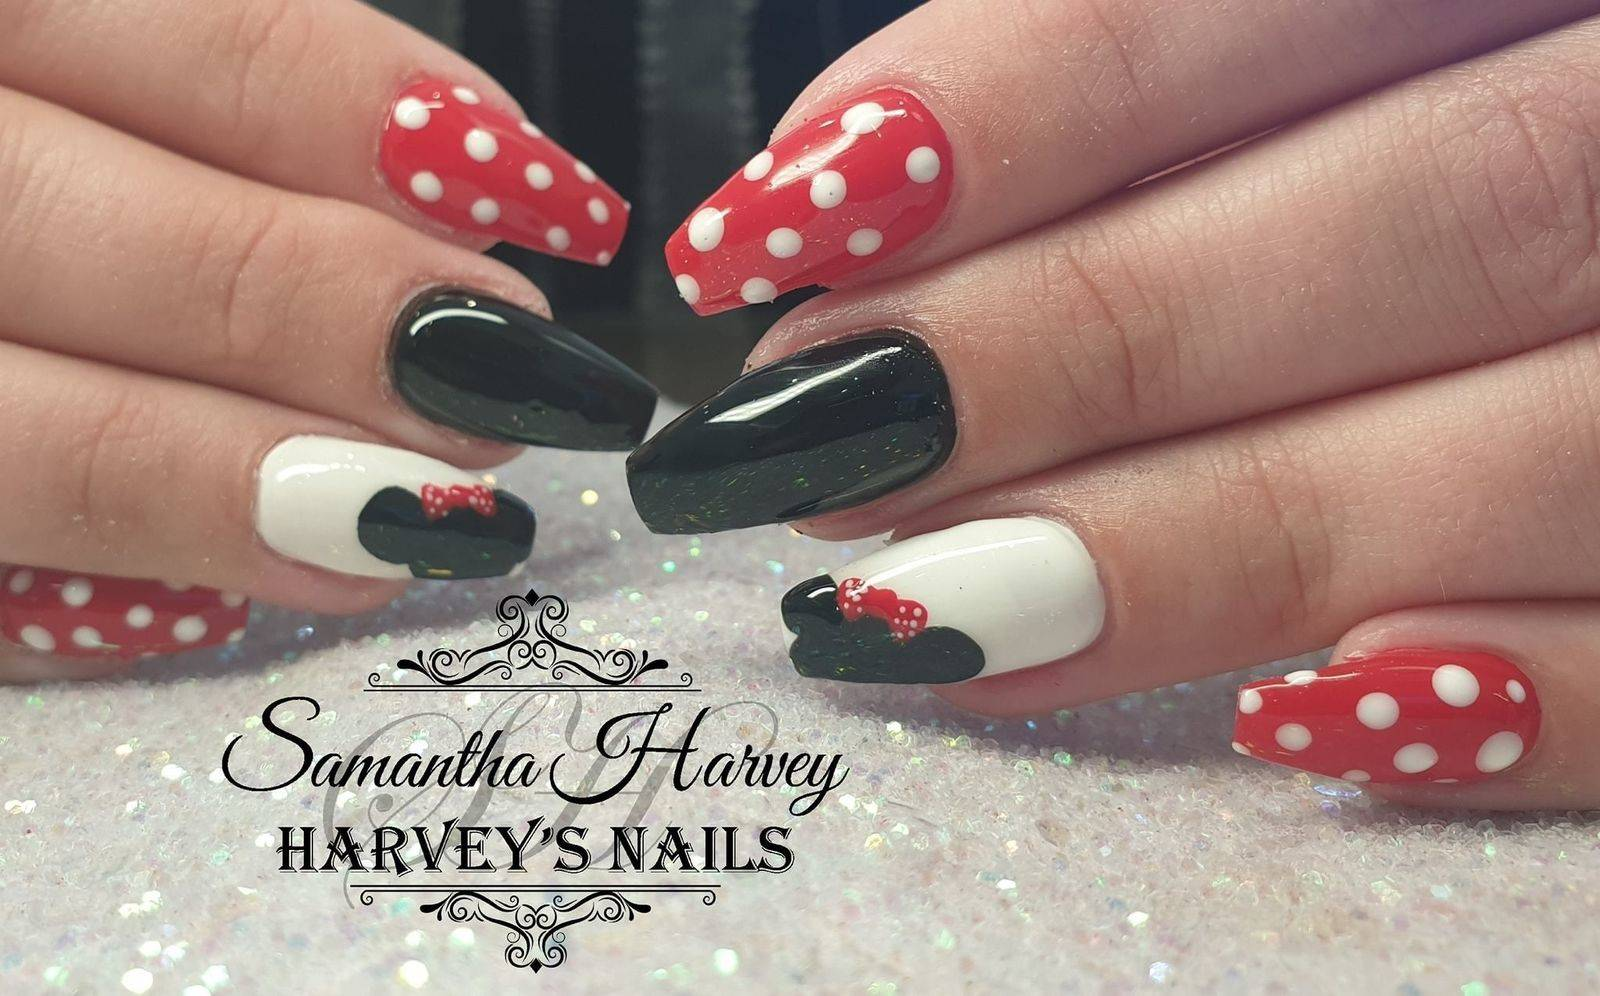 Acrylic extensions, finished with Gel polish and Mini mouse design